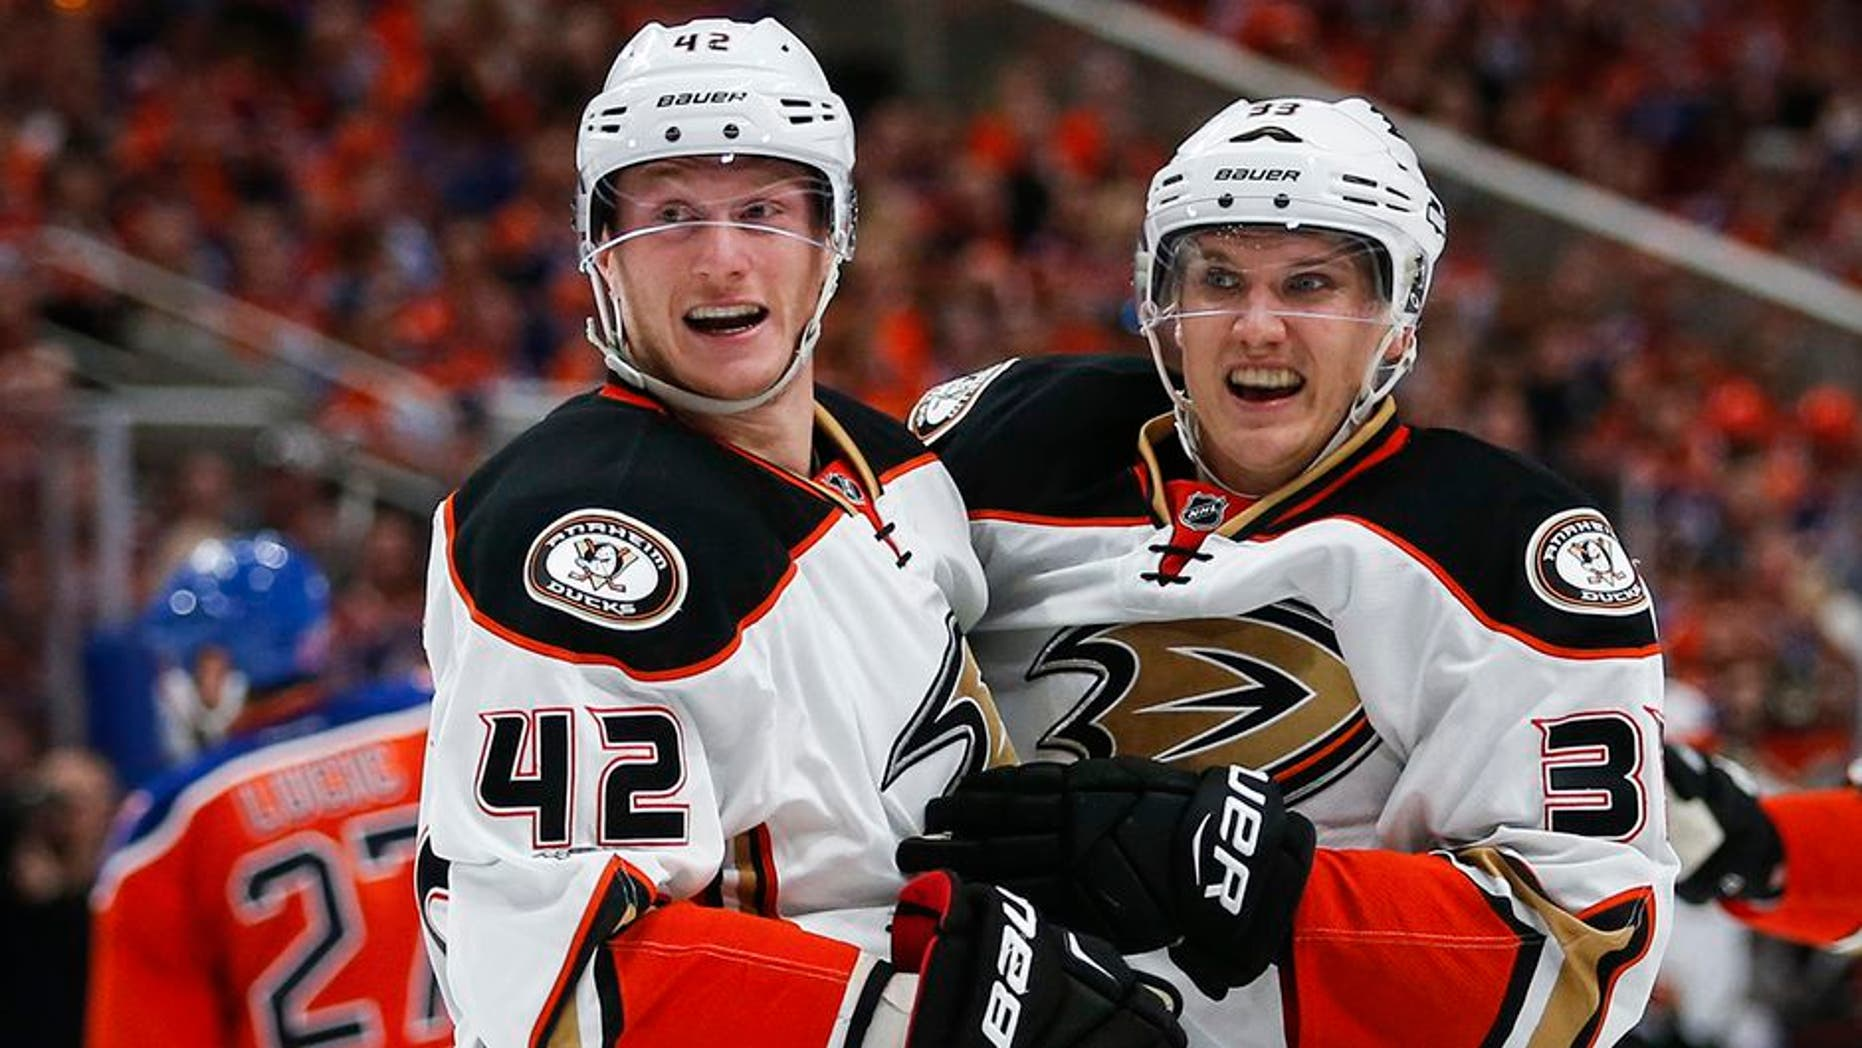 Anaheim Ducks' Jakob Silfverberg, right, from Sweden, celebrates his goal with teammate Josh Manson during the third period of Game 3 in a second-round NHL hockey Stanley Cup playoff series against the Edmonton Oilers in Edmonton, Alberta, Sunday, April 30, 2017. (Jeff McIntosh/The Canadian Press via AP)